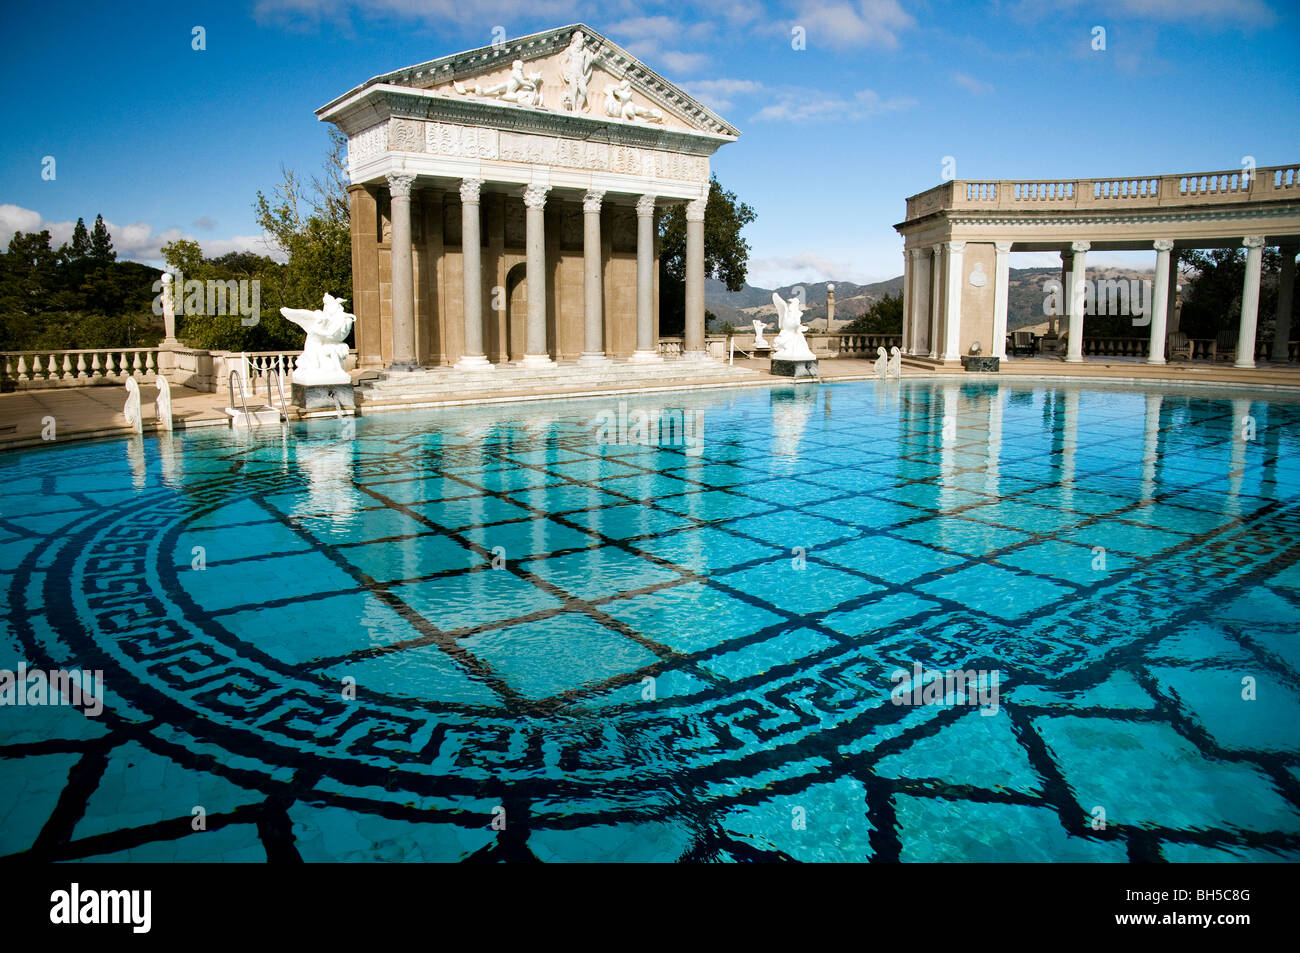 The neptune pool hearst castle san simeon california - Swimming pool at buckingham palace ...